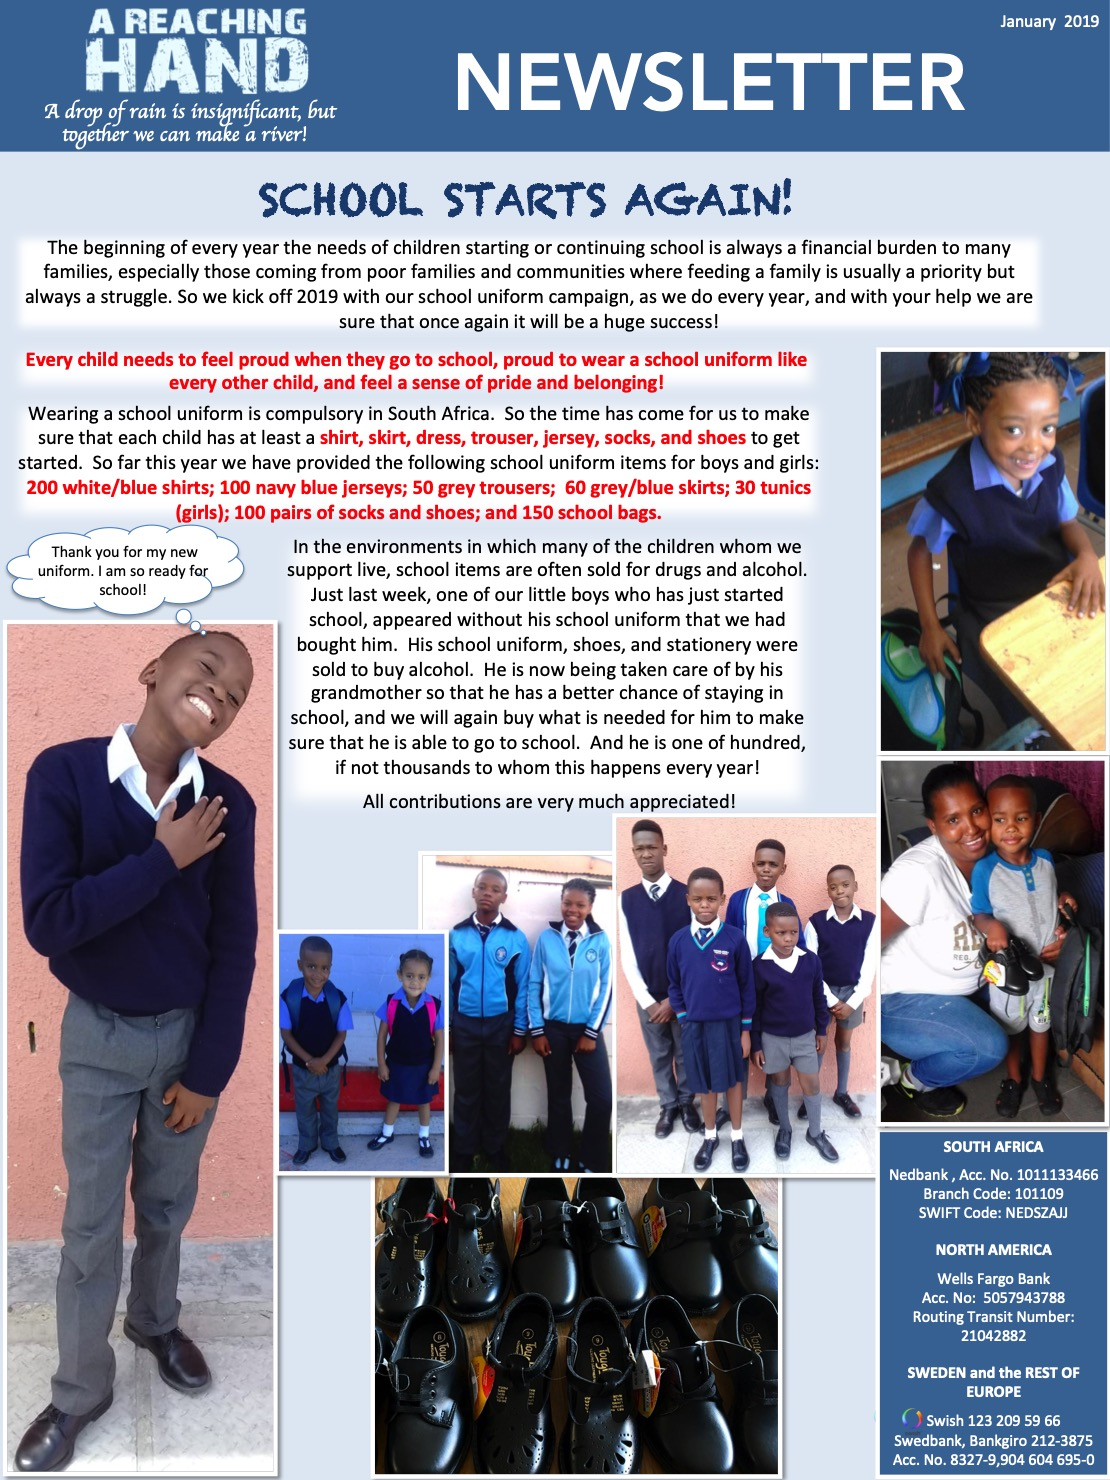 ARH English Newsletter School Starts 2019 P1.jpg